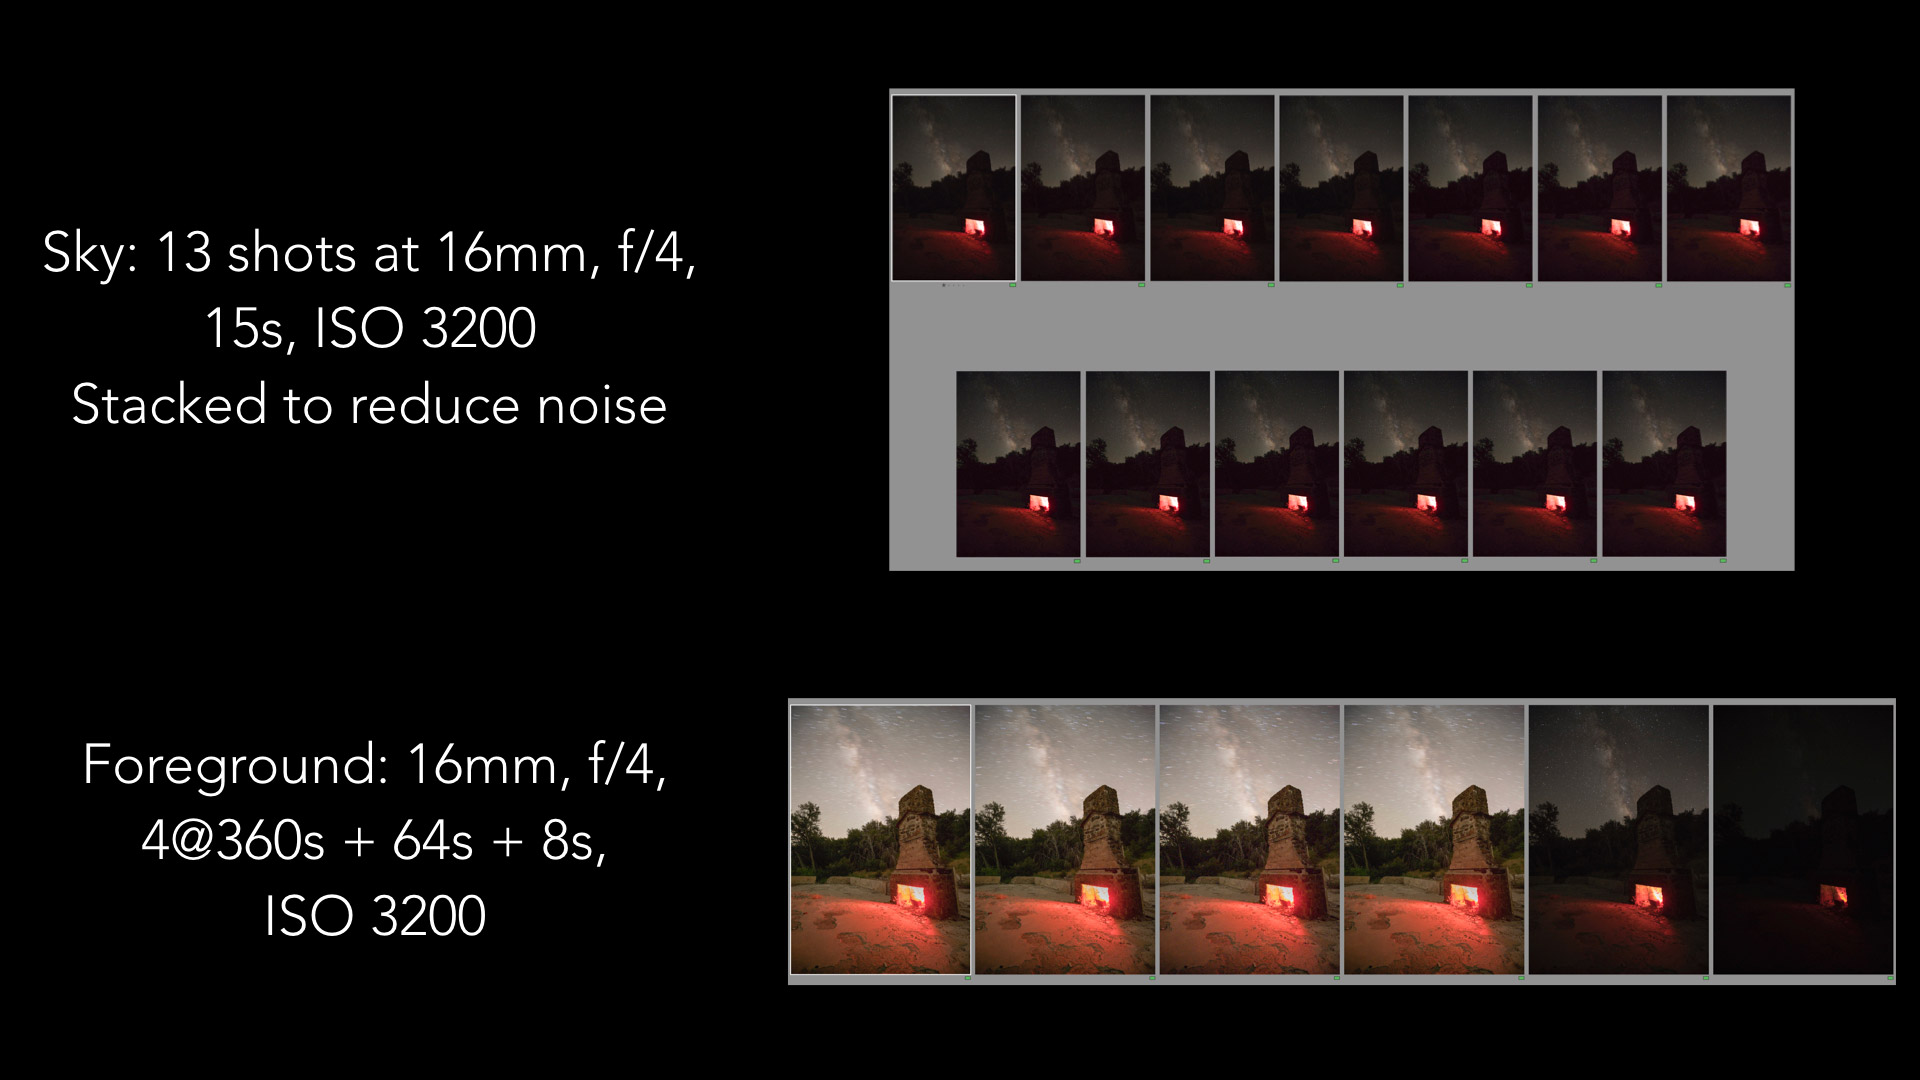 Stacking images to reduce noise